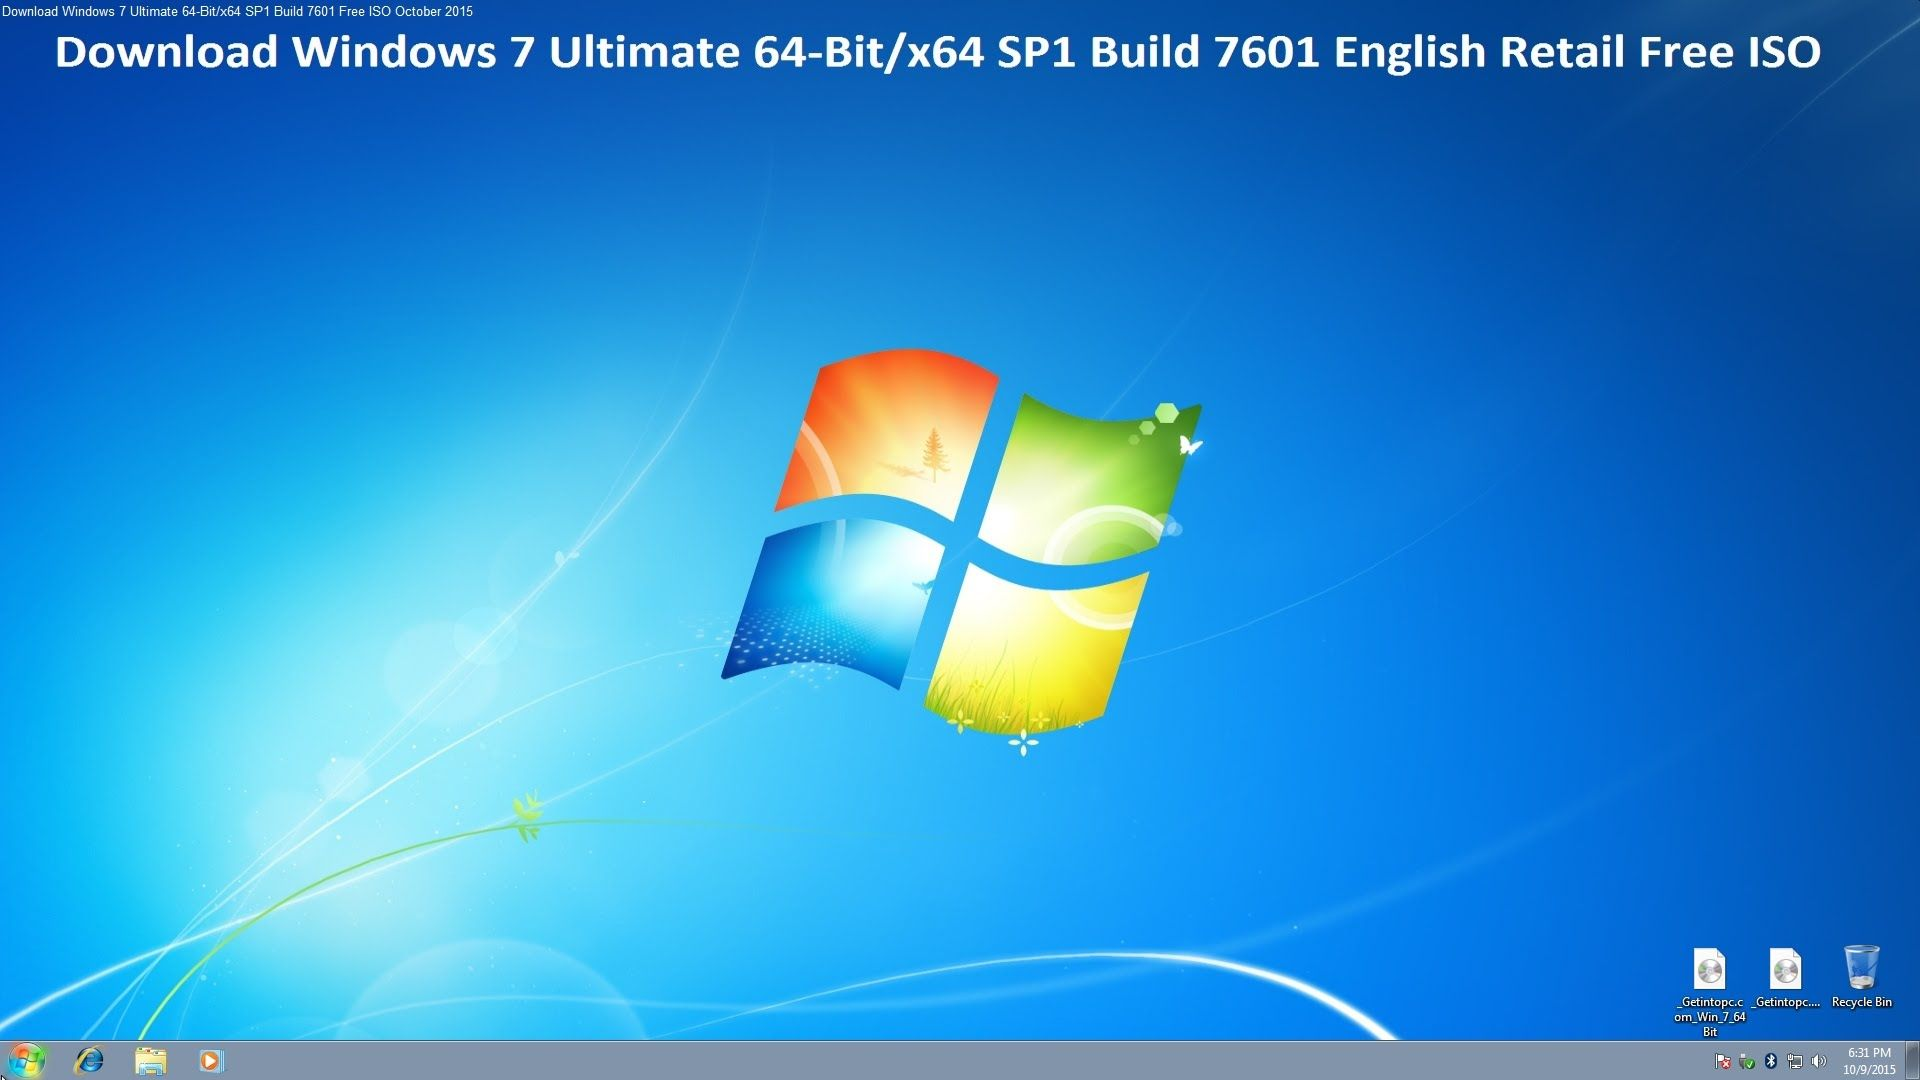 Download Windows 7 Ultimate 64-Bit/x64 SP1 Build 7601 Free ISO